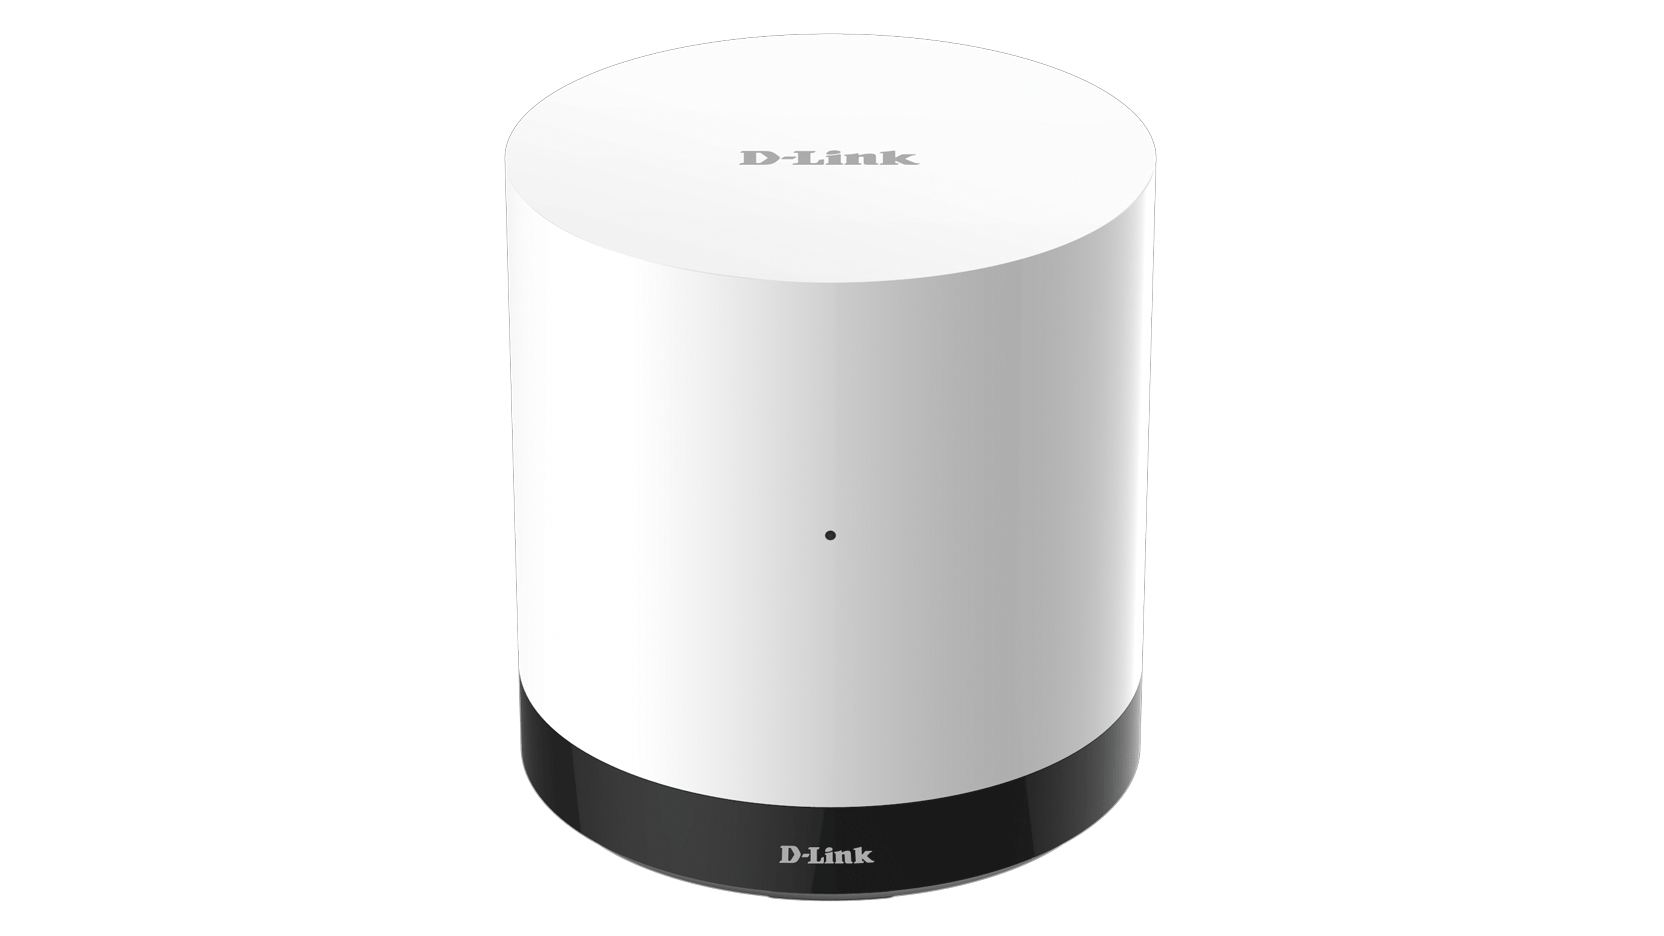 D-LINK DCH-G020 WHITE INTERFACE HUB